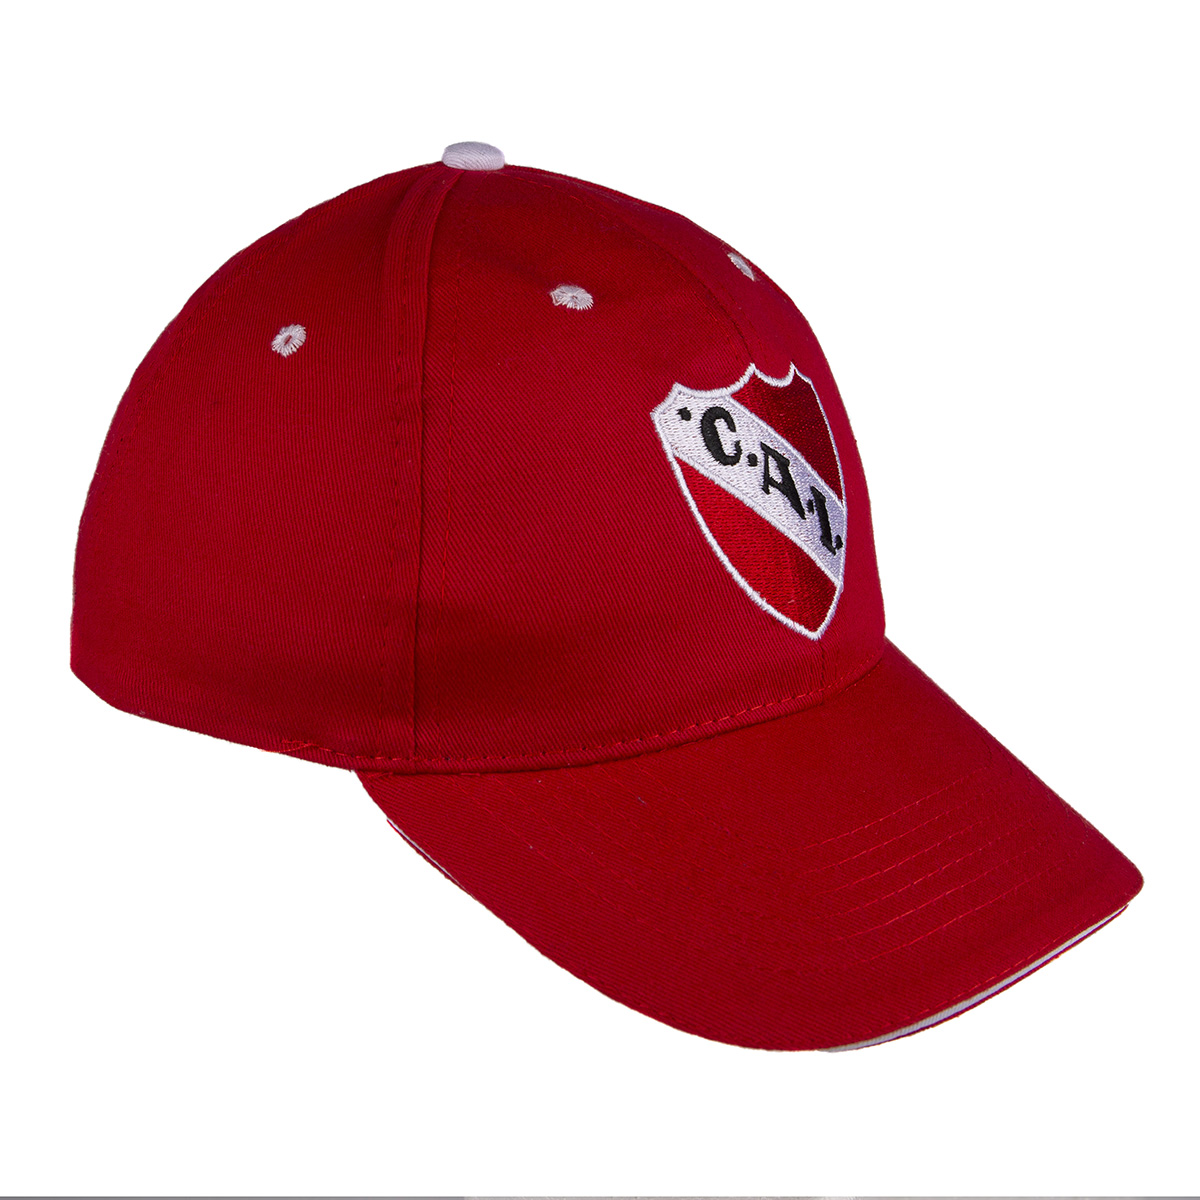 GORRA SOFT CLUB ATLETICO INDEPENDIENTE